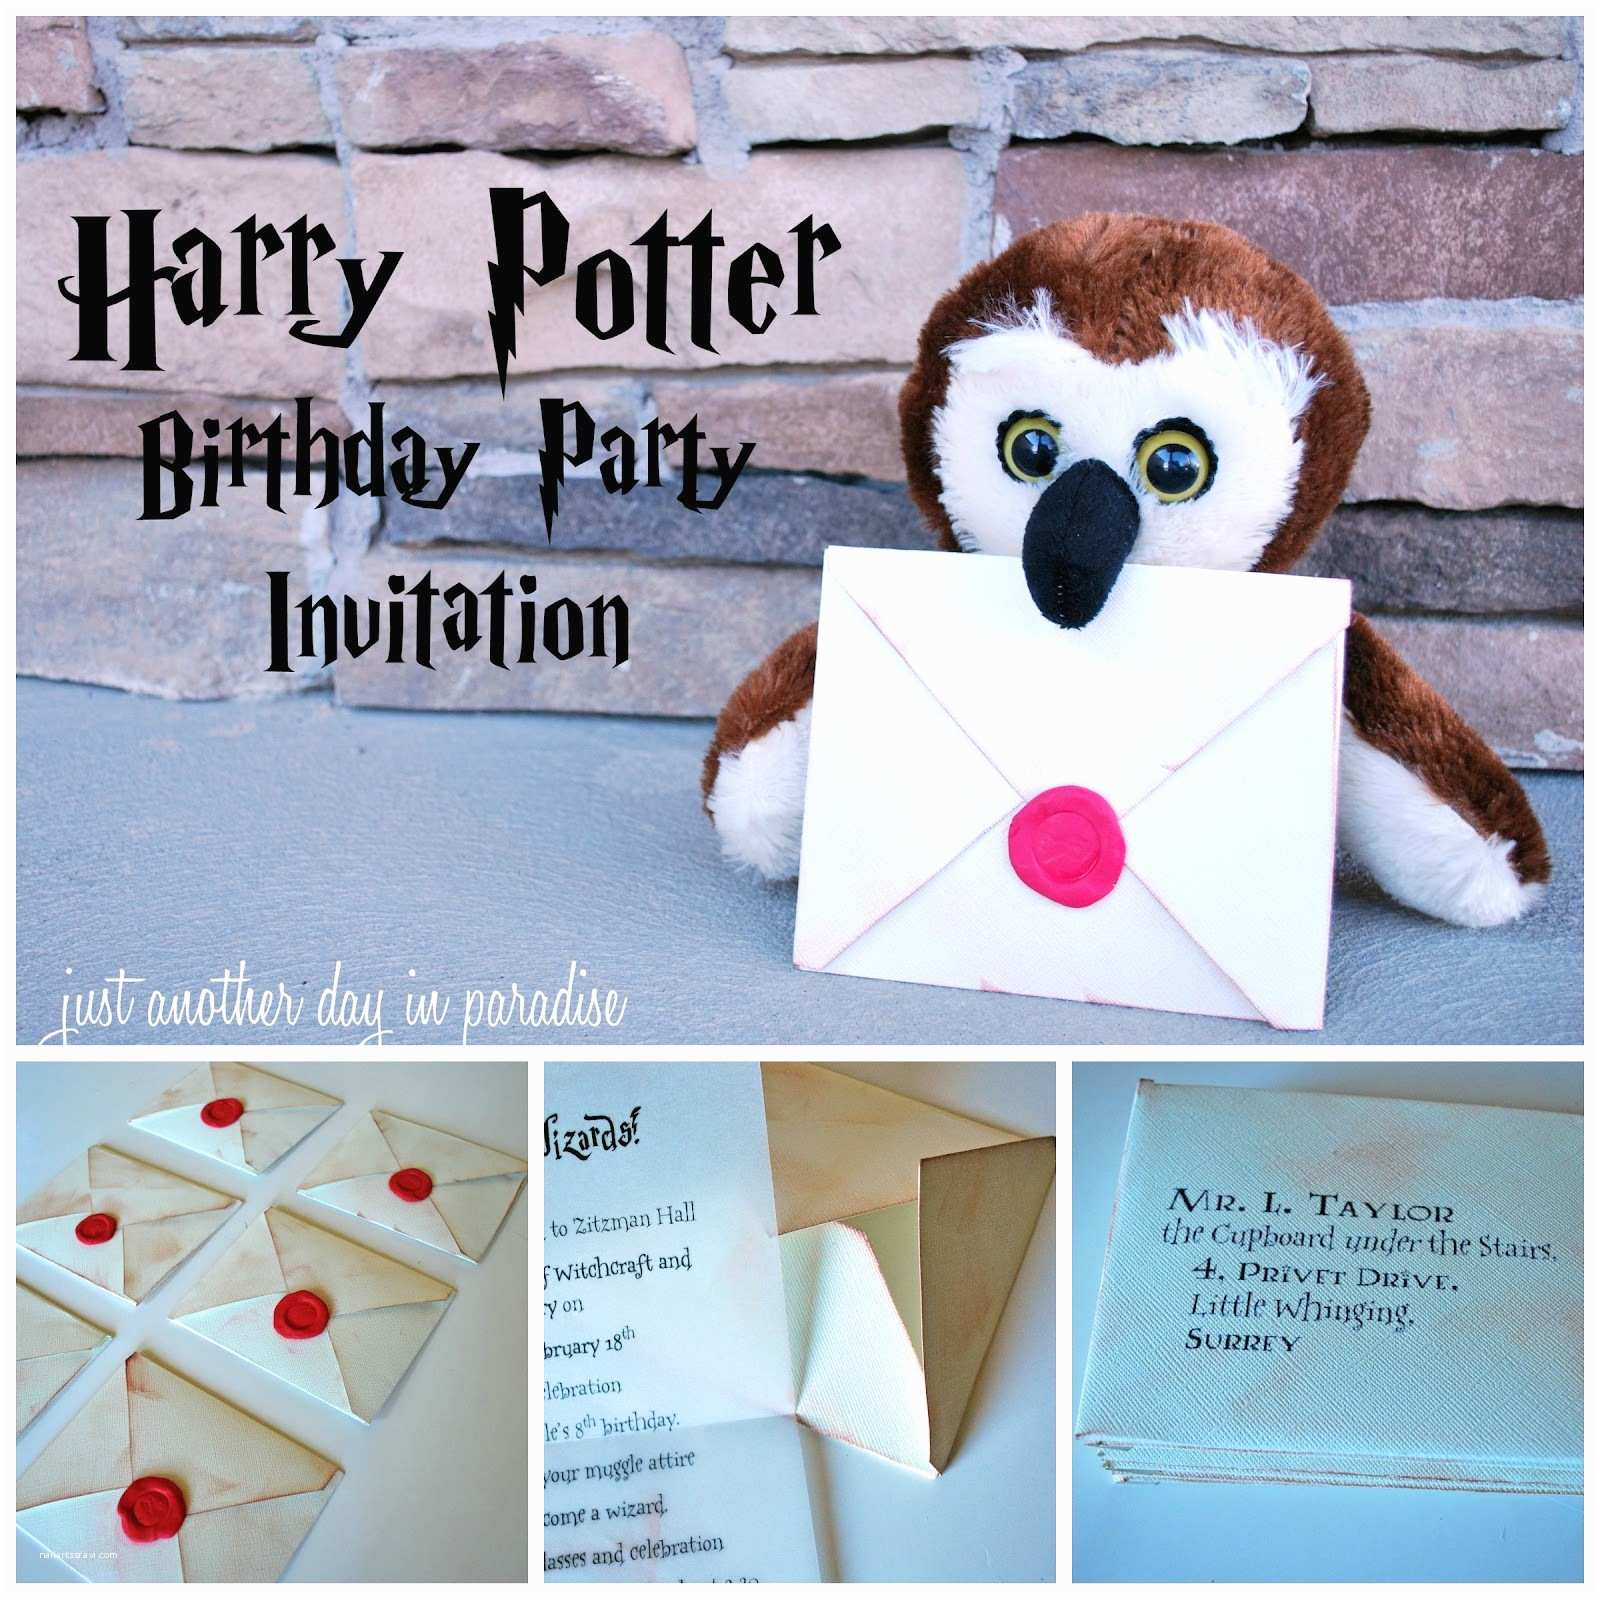 Harry Potter Party Invitations Harry Potter Birthday Invites by Just Another Day In